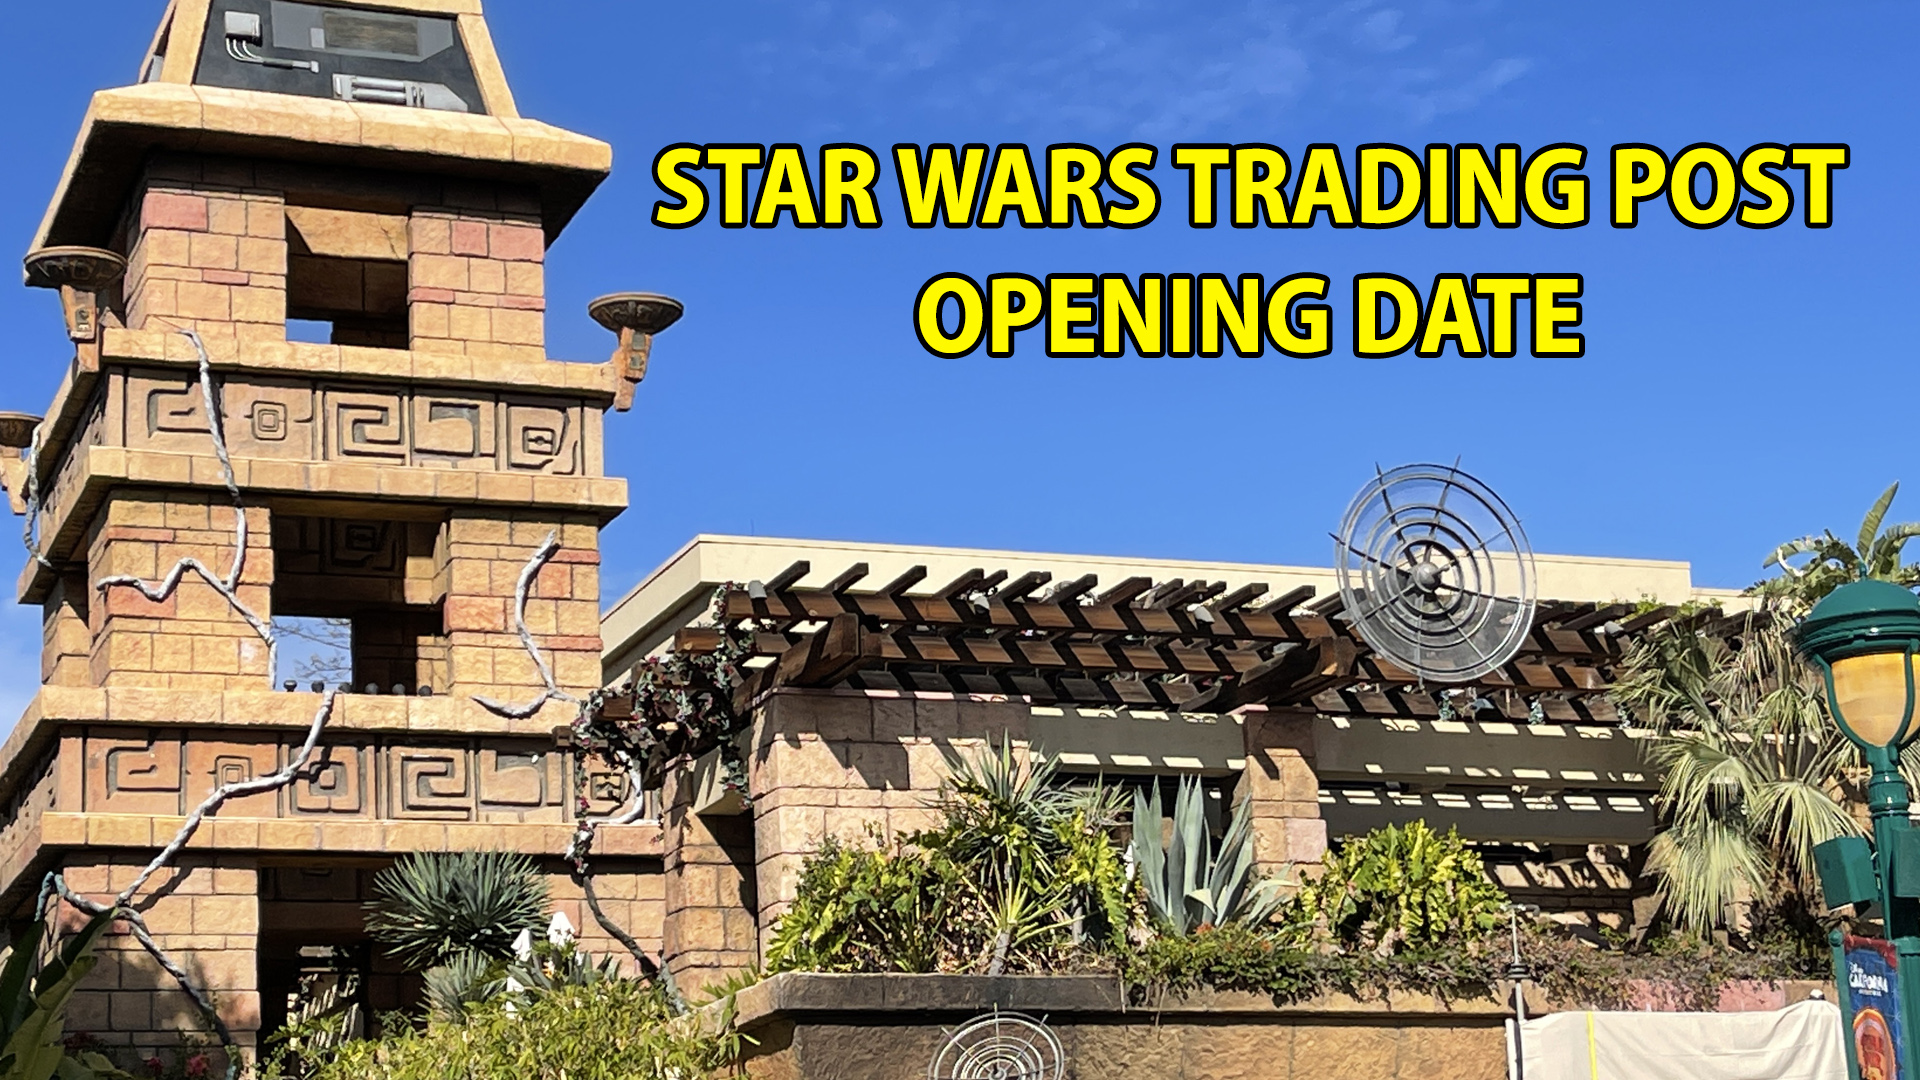 Downtown Disney Announces Opening Date for New Star Wars Trading Post Location and Preview for Legacy Passholders